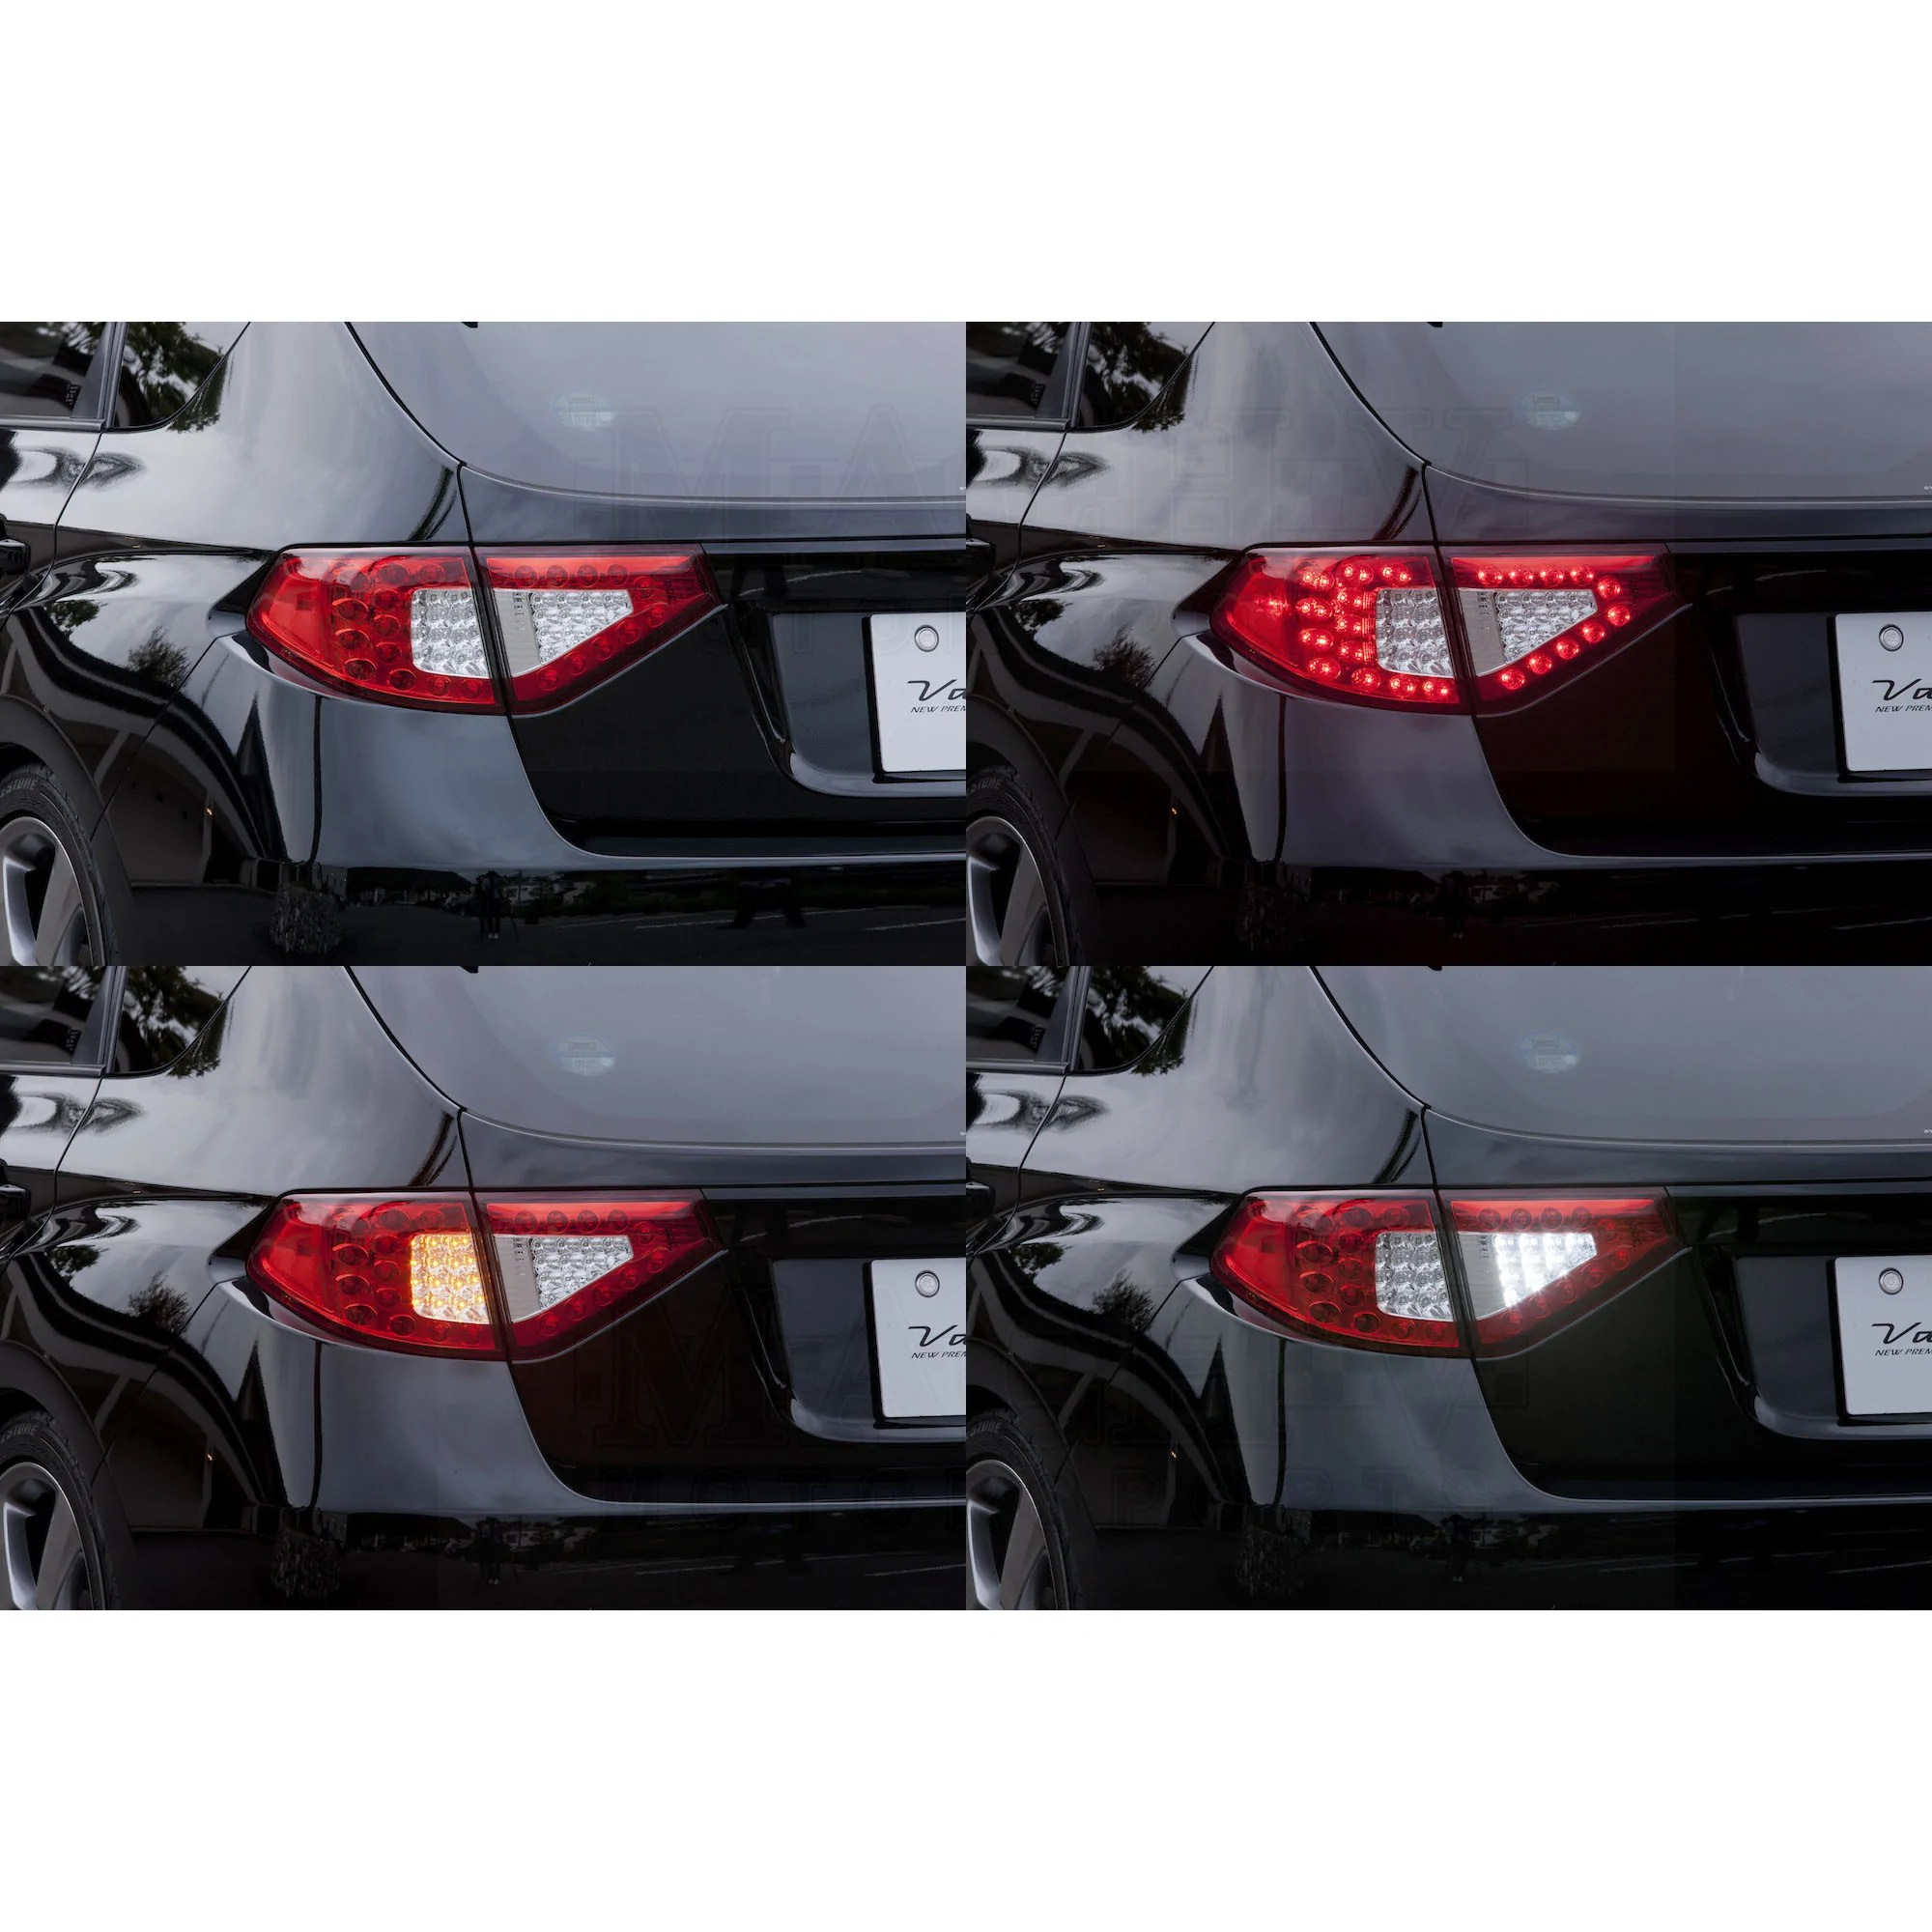 hight resolution of  red chrome valenti tail lamp gr gh lighting modes